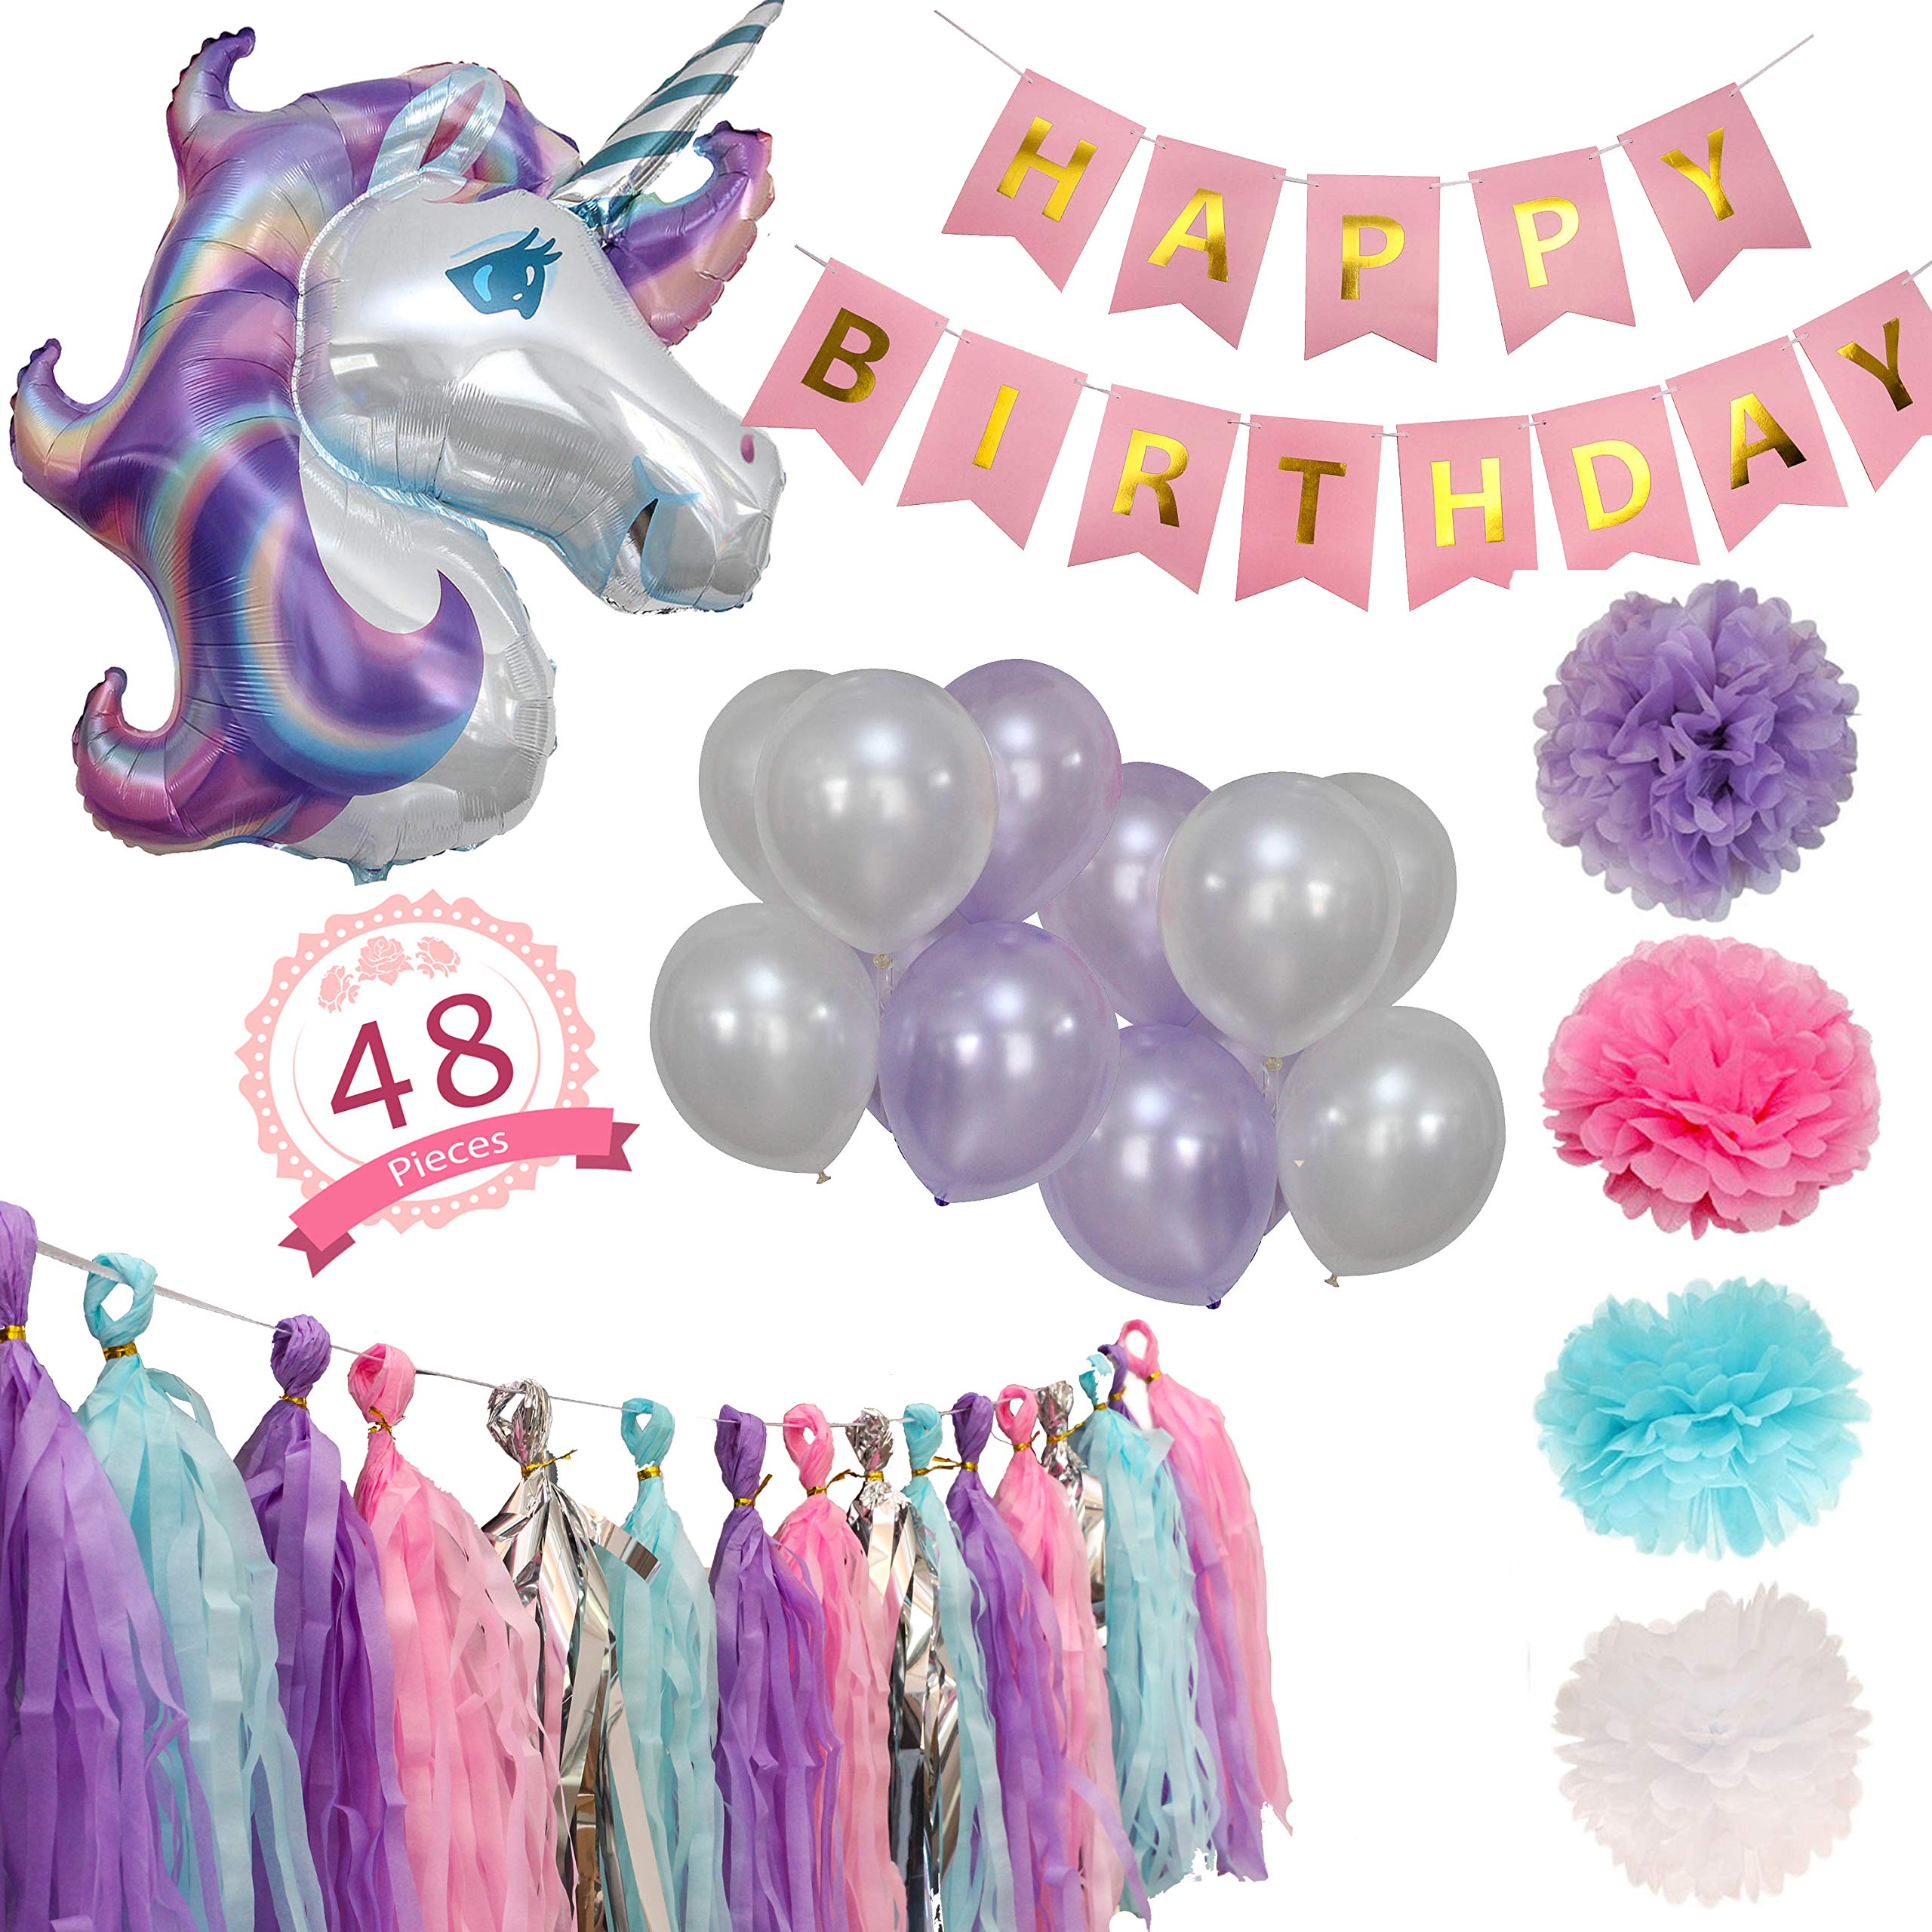 Party Maniak Unicorn Party Supplies Decorations for Girls with Banner, Foil and Latex Balloons, Tassels and Pom Pom - 48 Pieces